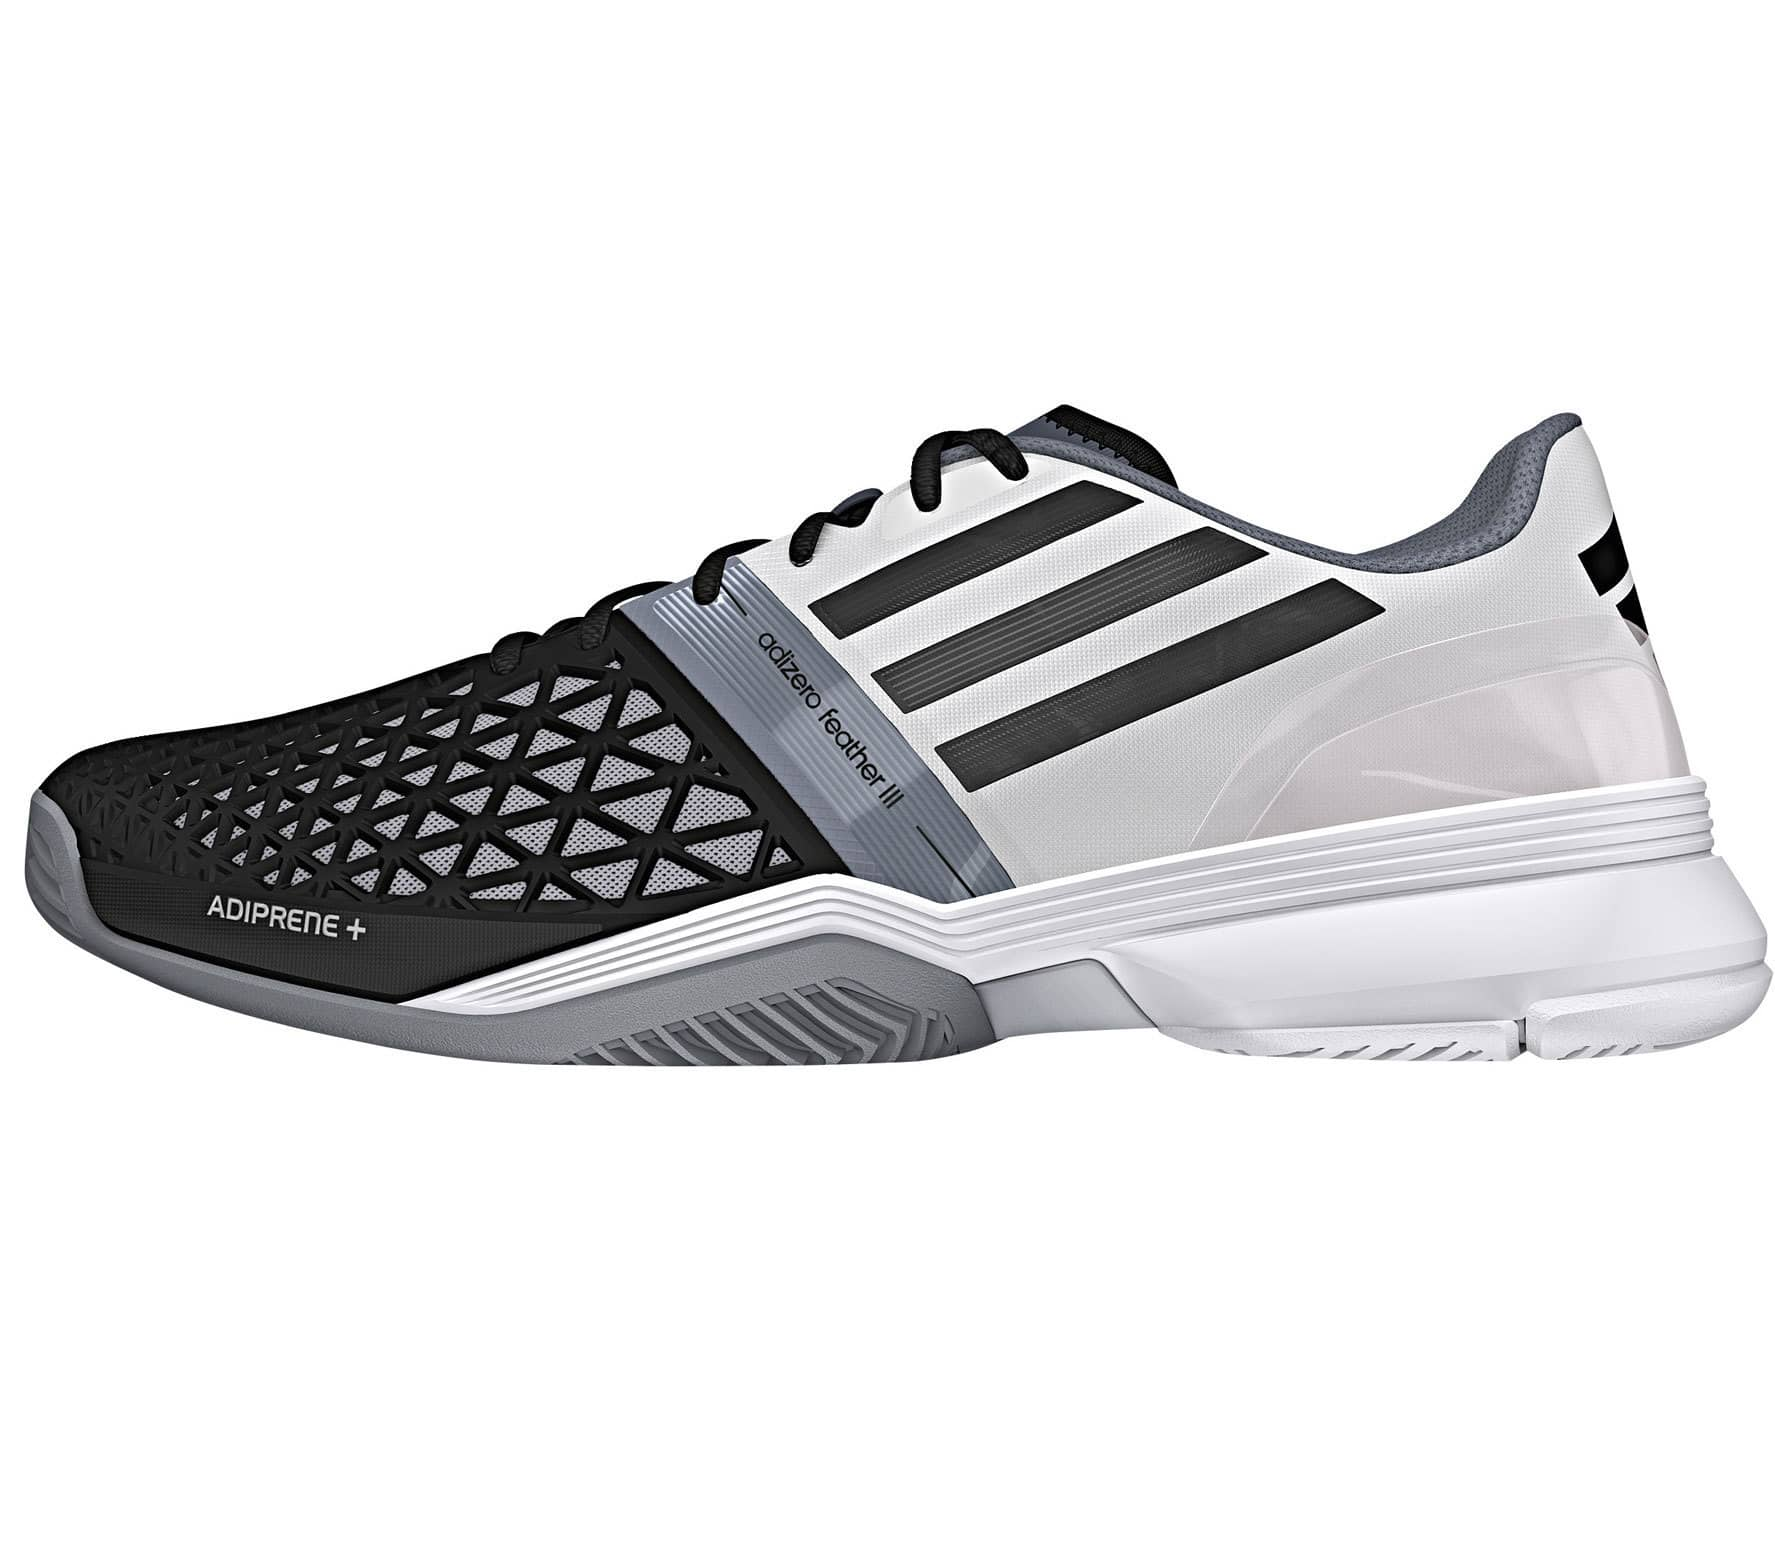 low priced 5ebe2 dc160 CC Adizero Feather III mens tennis shoes (blackwhite)